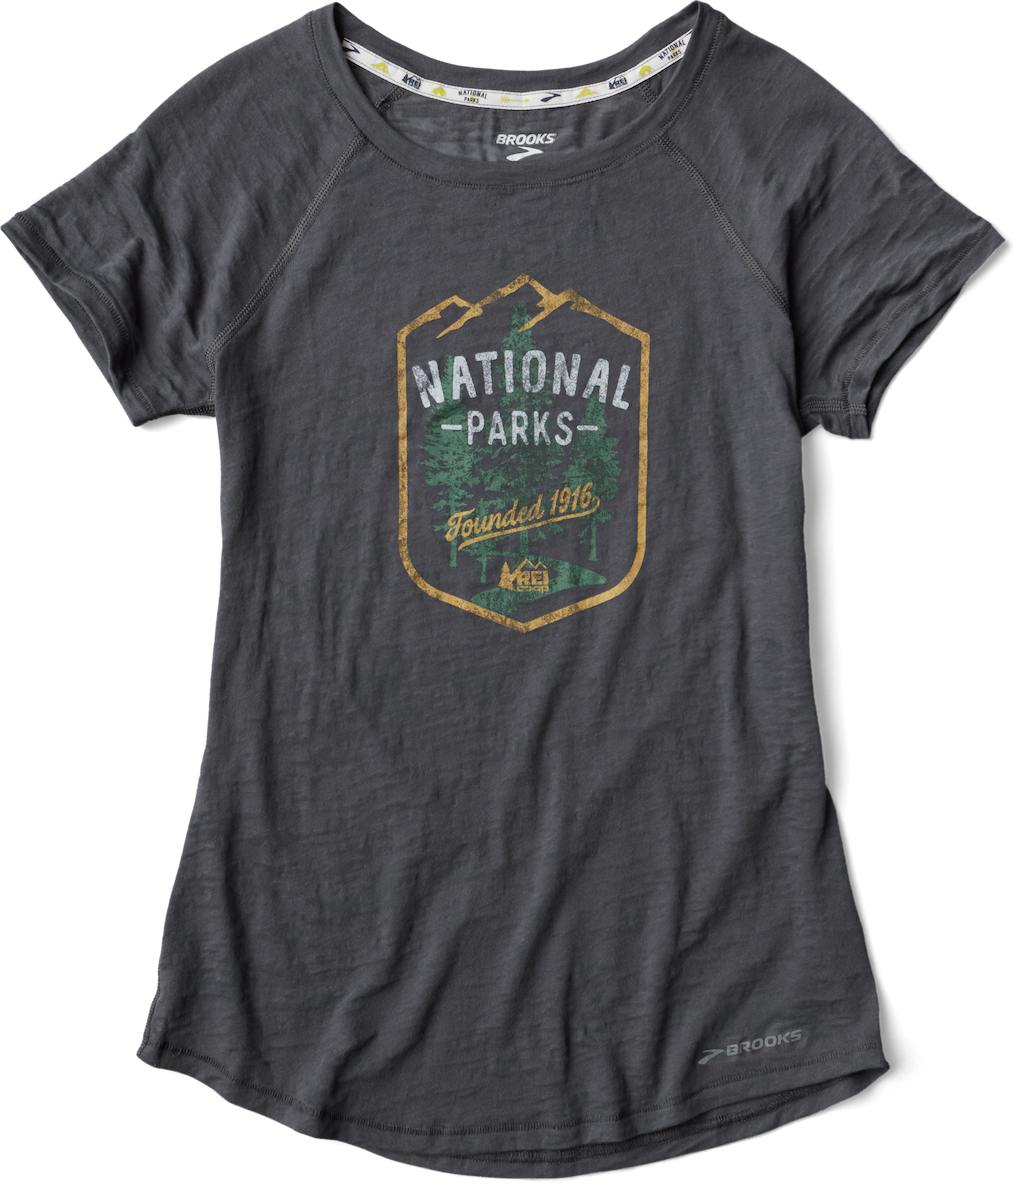 150dc27c405c4 Brooks Releases Limited Edition National Parks Collection